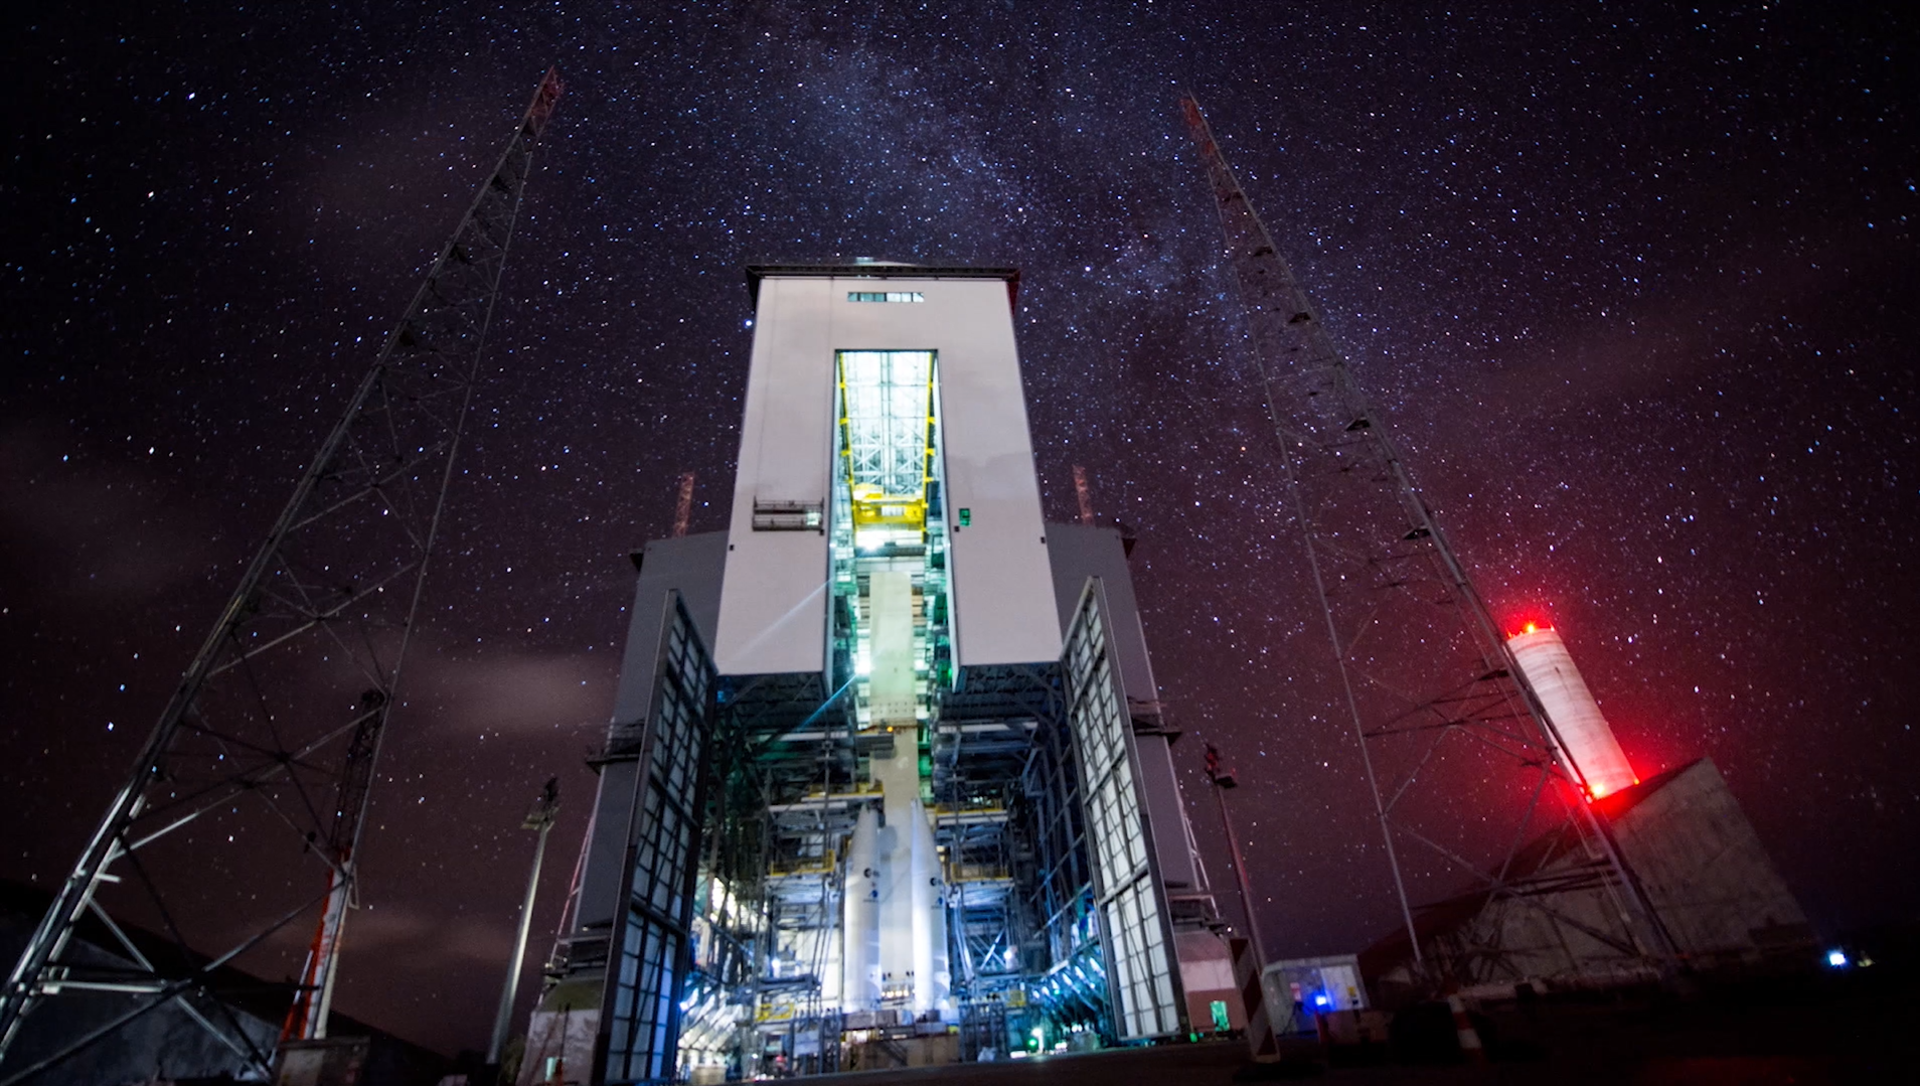 A timelapse under the stars on the Ariane 6 launch base at Europe's Spaceport